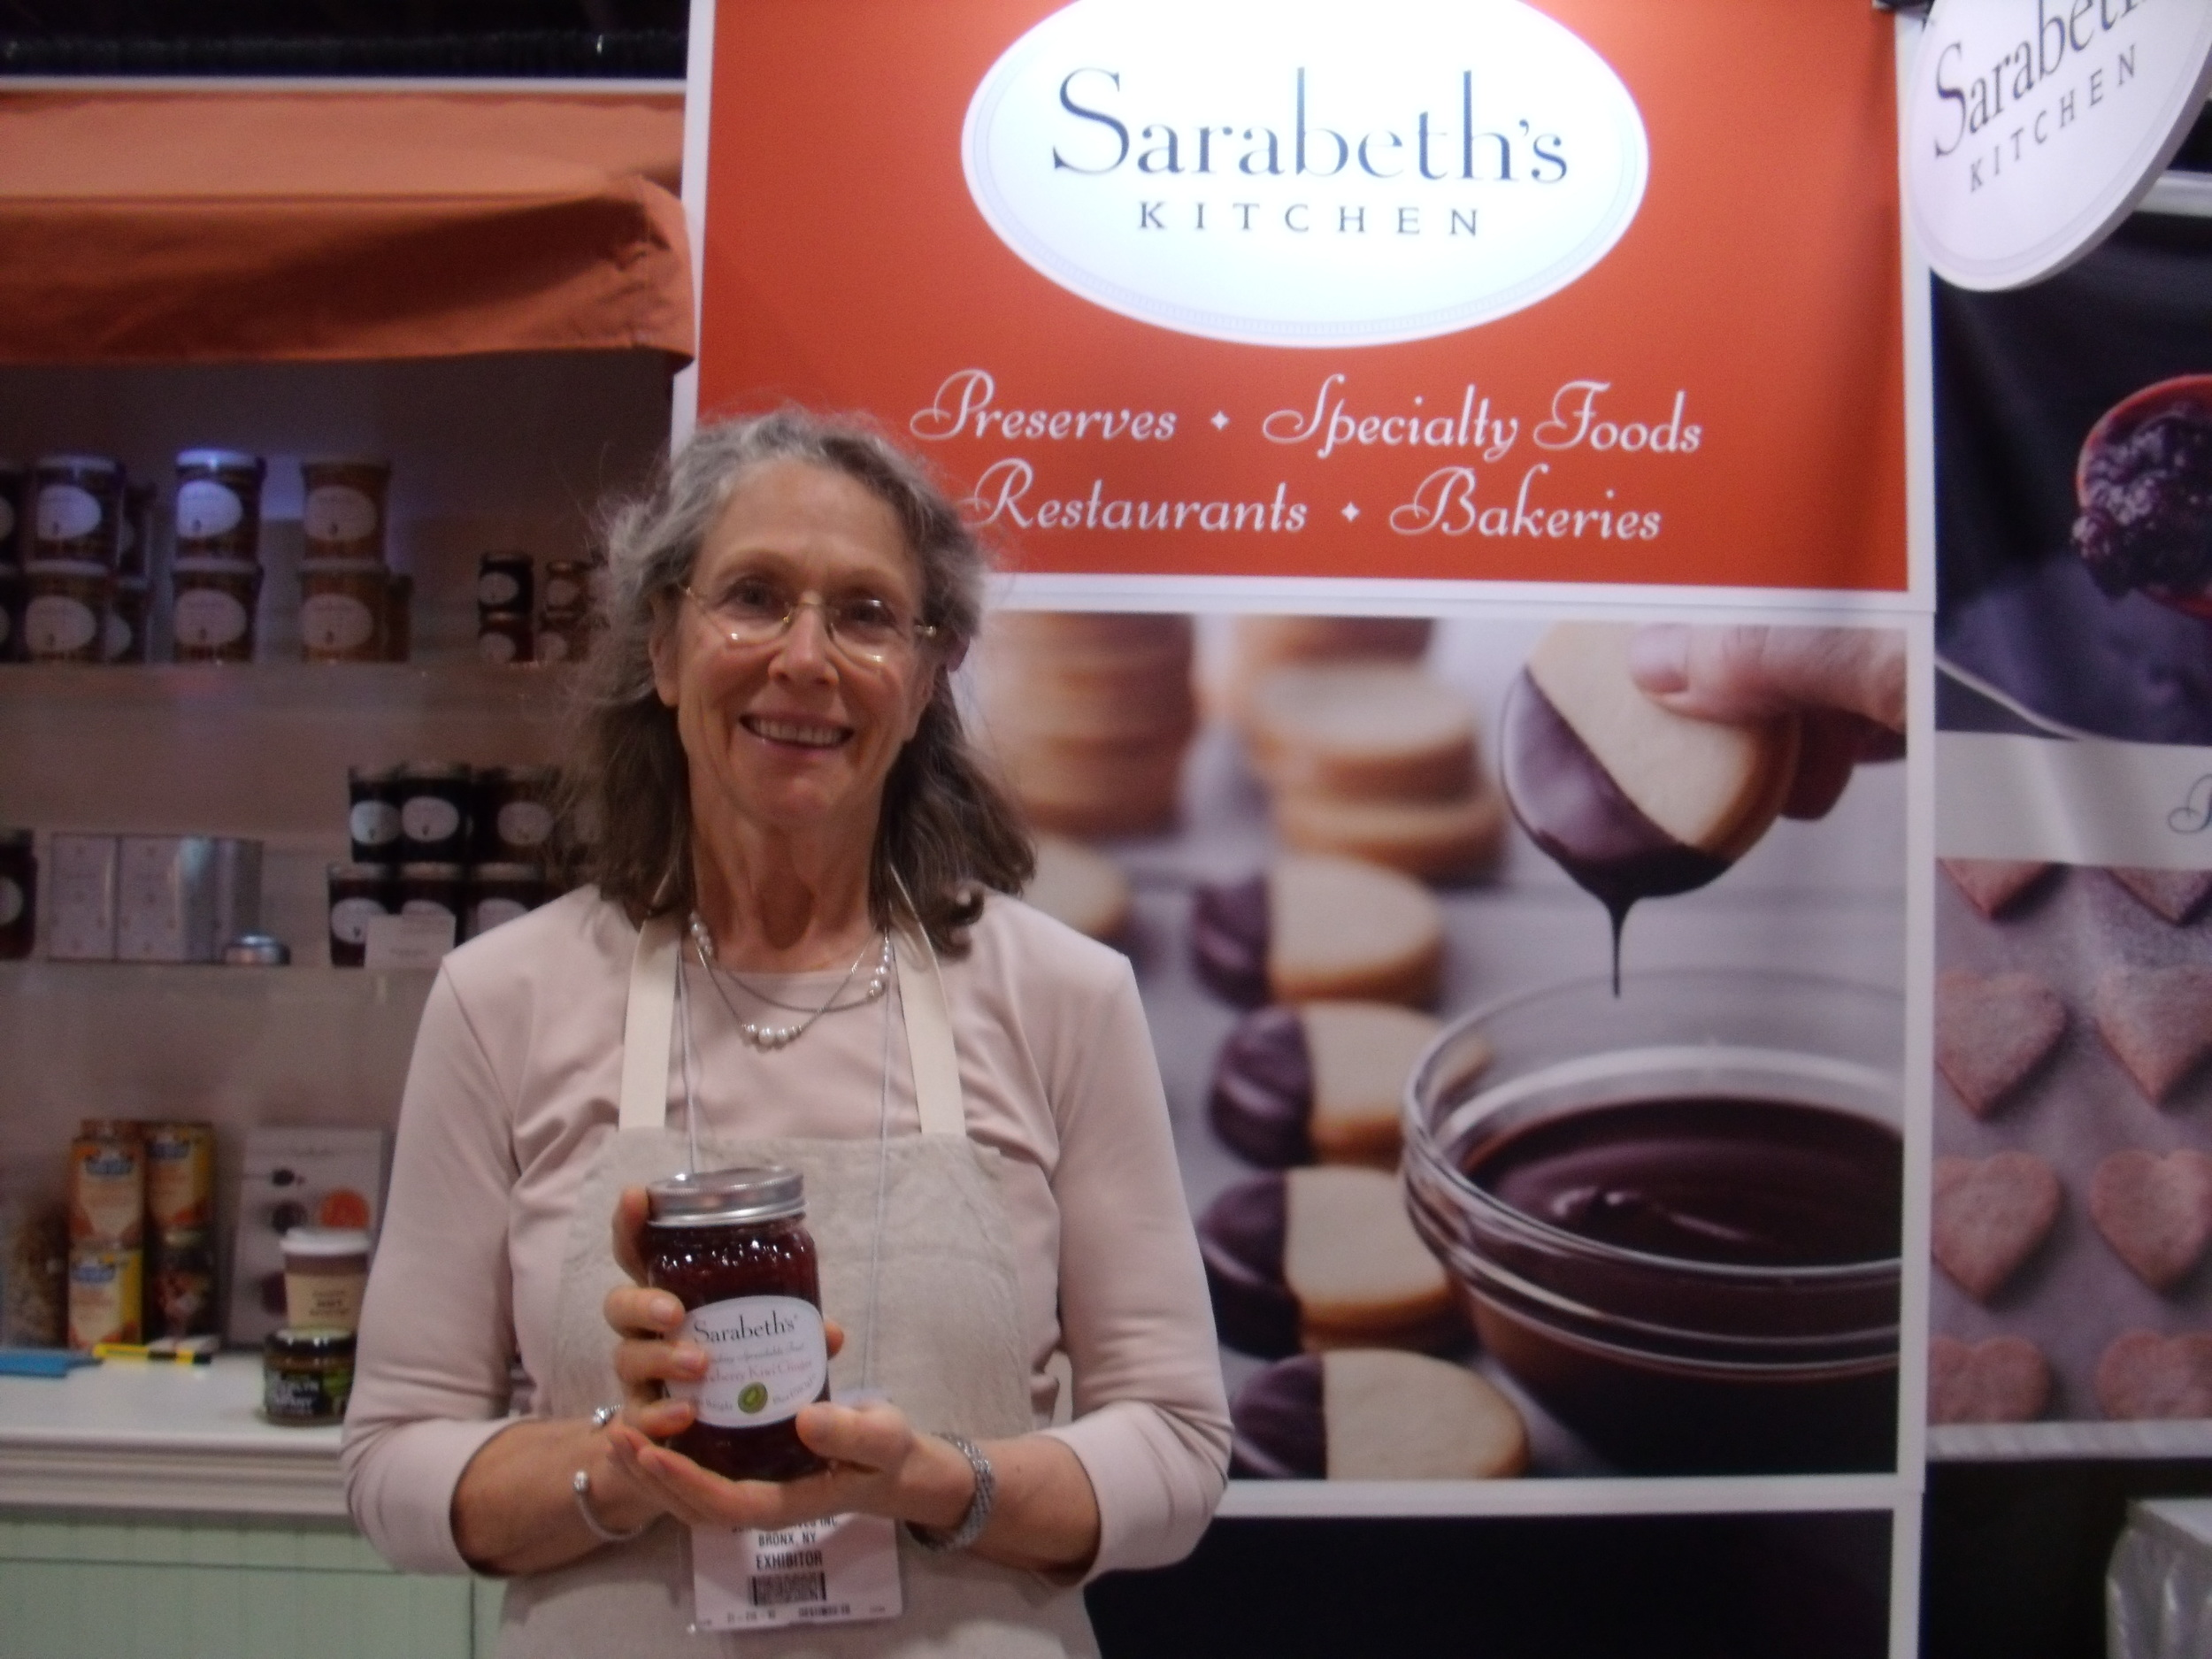 Sarabeth Levine, Founder and CEO of Sarabeth's. Picture taken at the 2015 Specialty Foods Association New York Fancy Food Show.